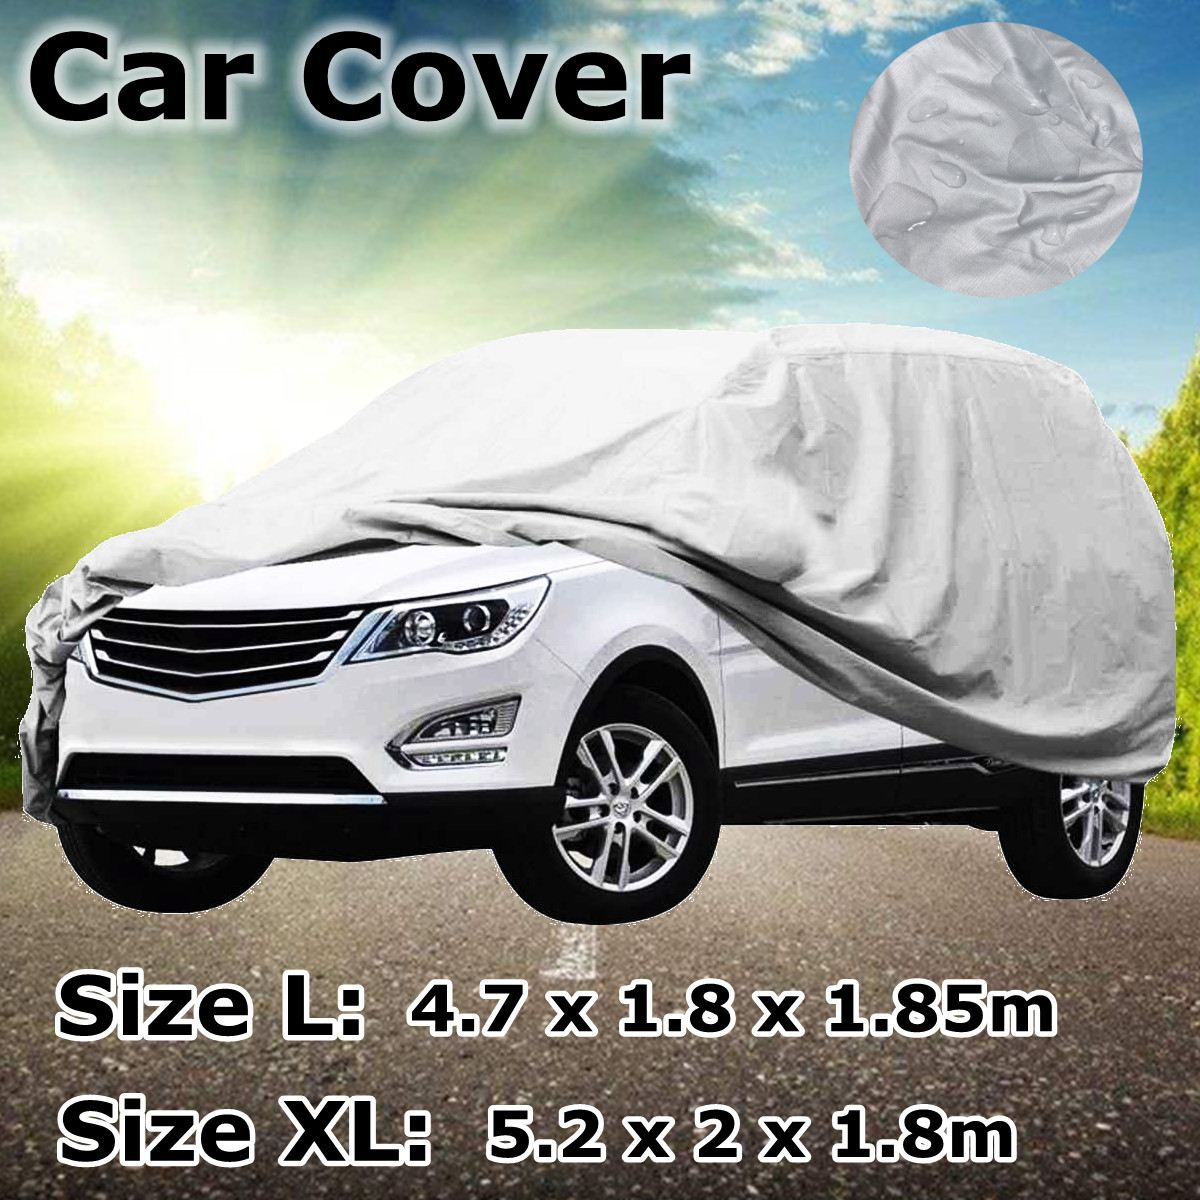 Car Cover L/XL Size SUV Full Car Covers Snow Ice Sun Rain Resistant Protection Waterproof Dustproof Outdoor Indoor